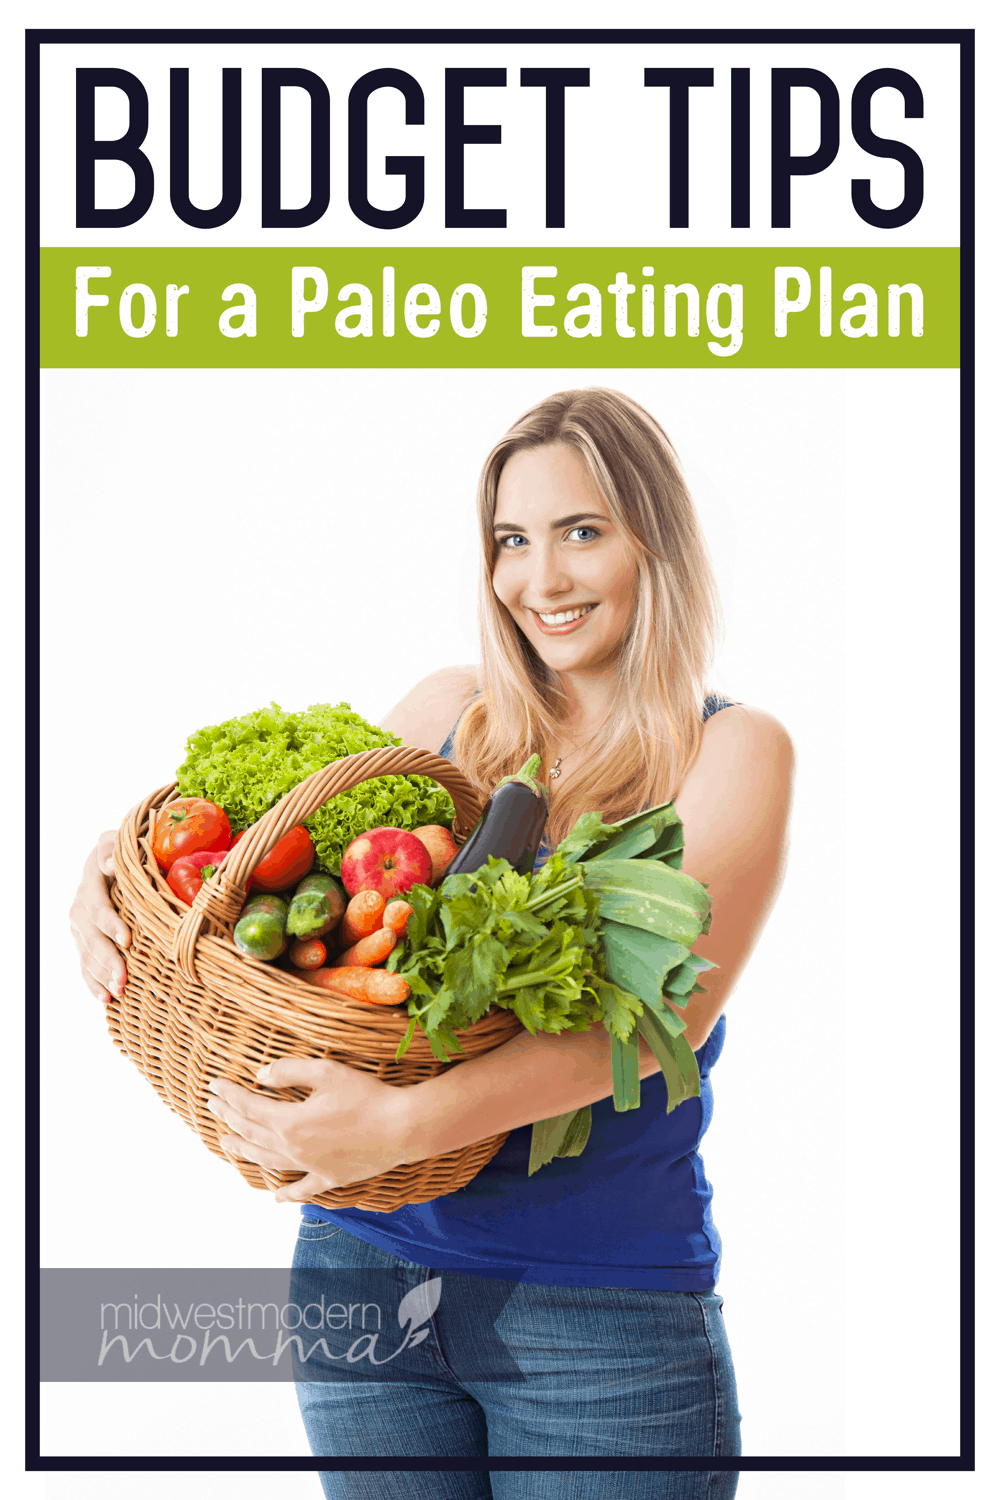 Tips for Eating Paleo on a Budget